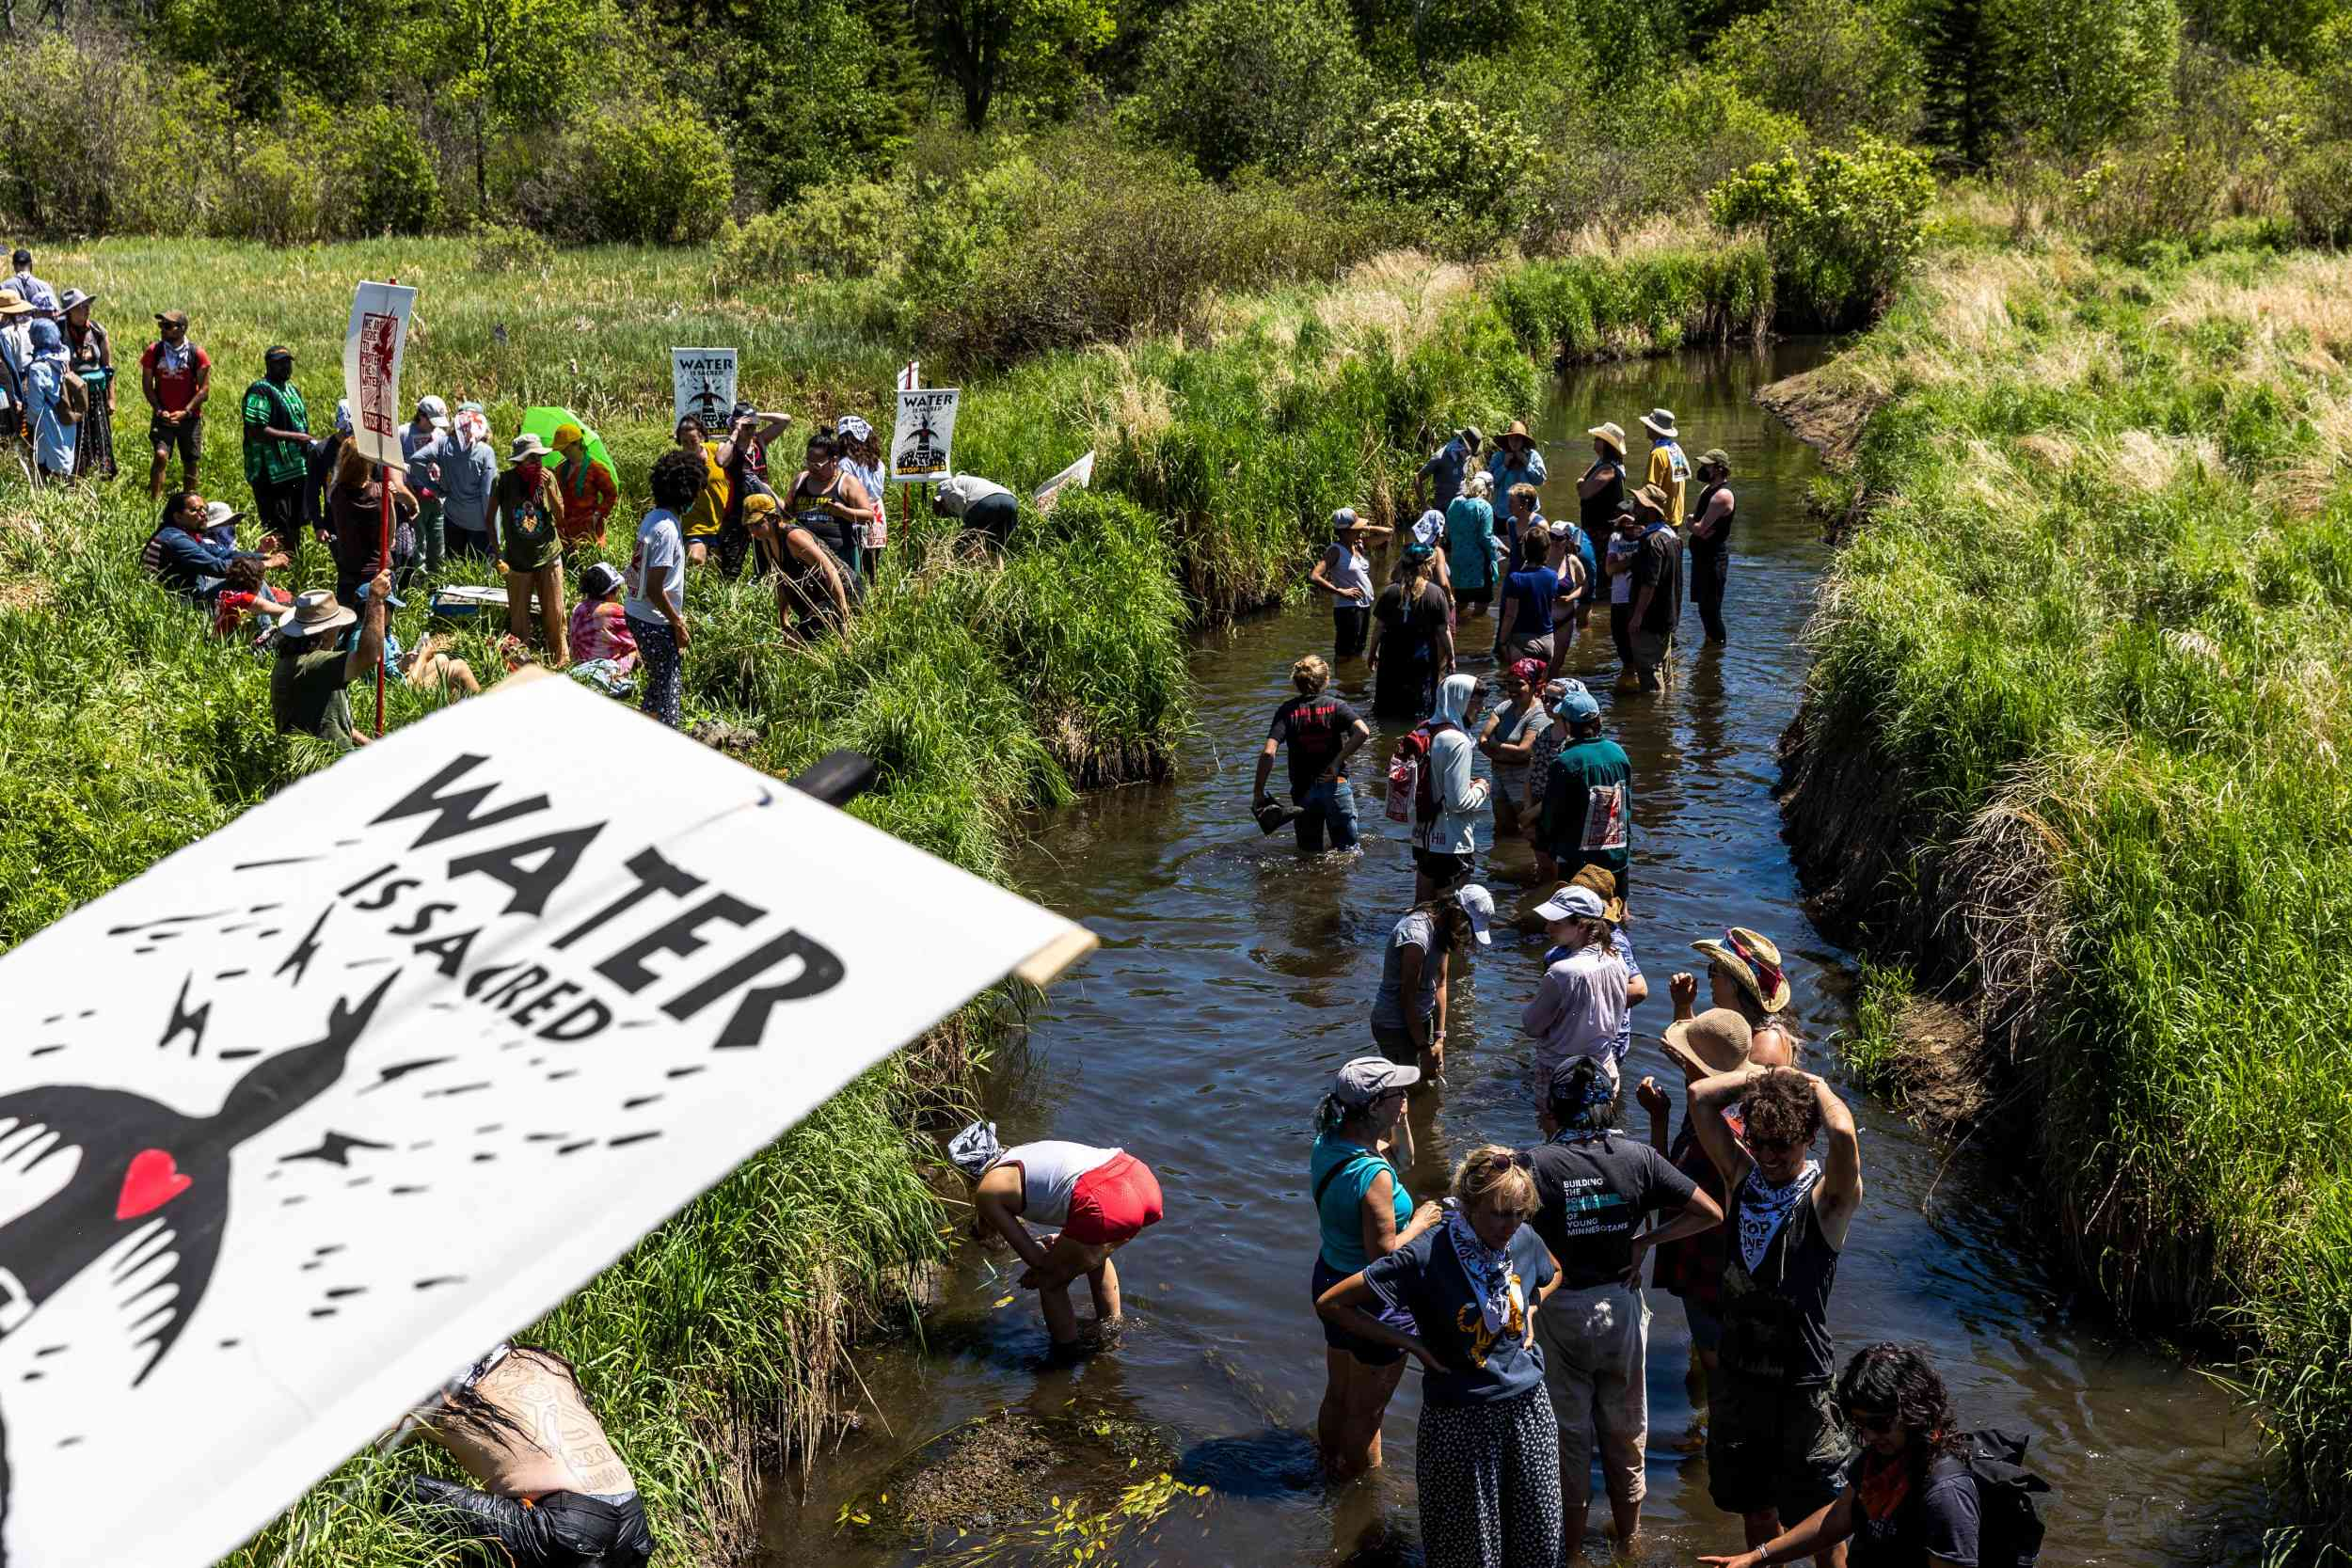 Native Americans sue Exxon over 'human rights violations' on their land